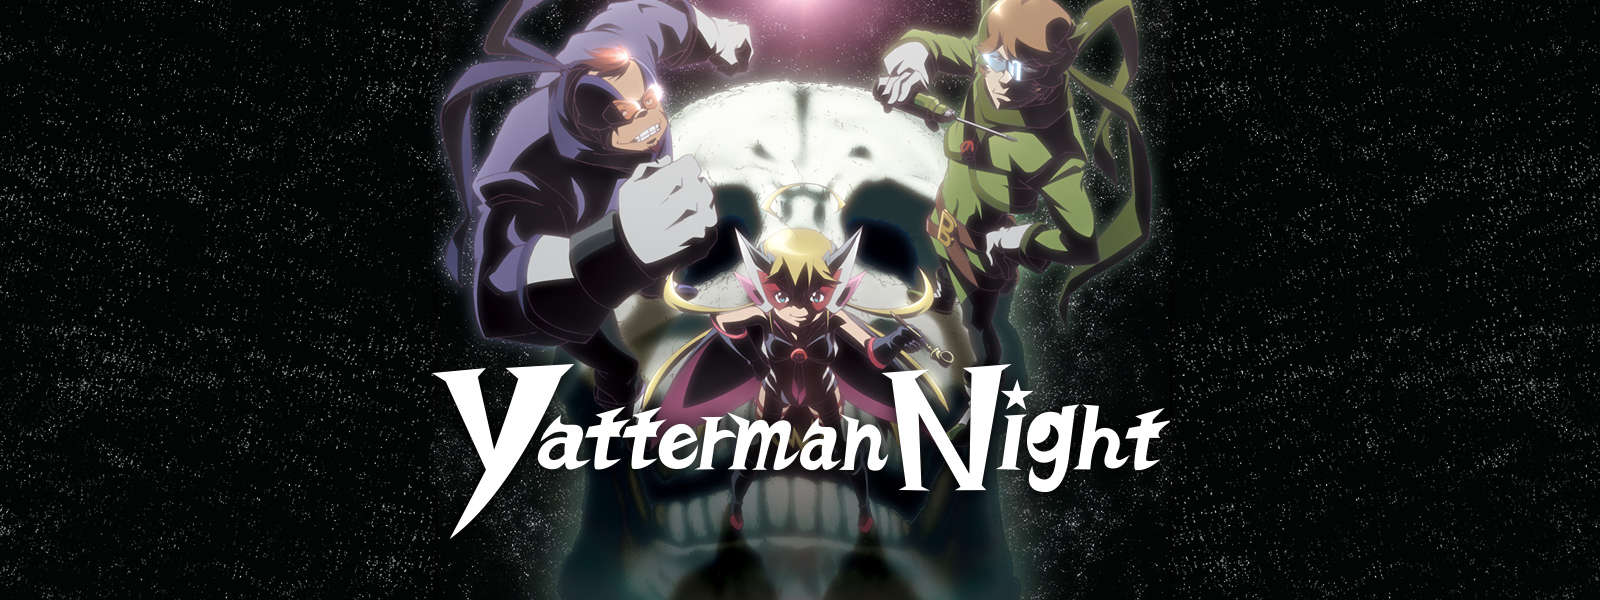 Yatterman Night